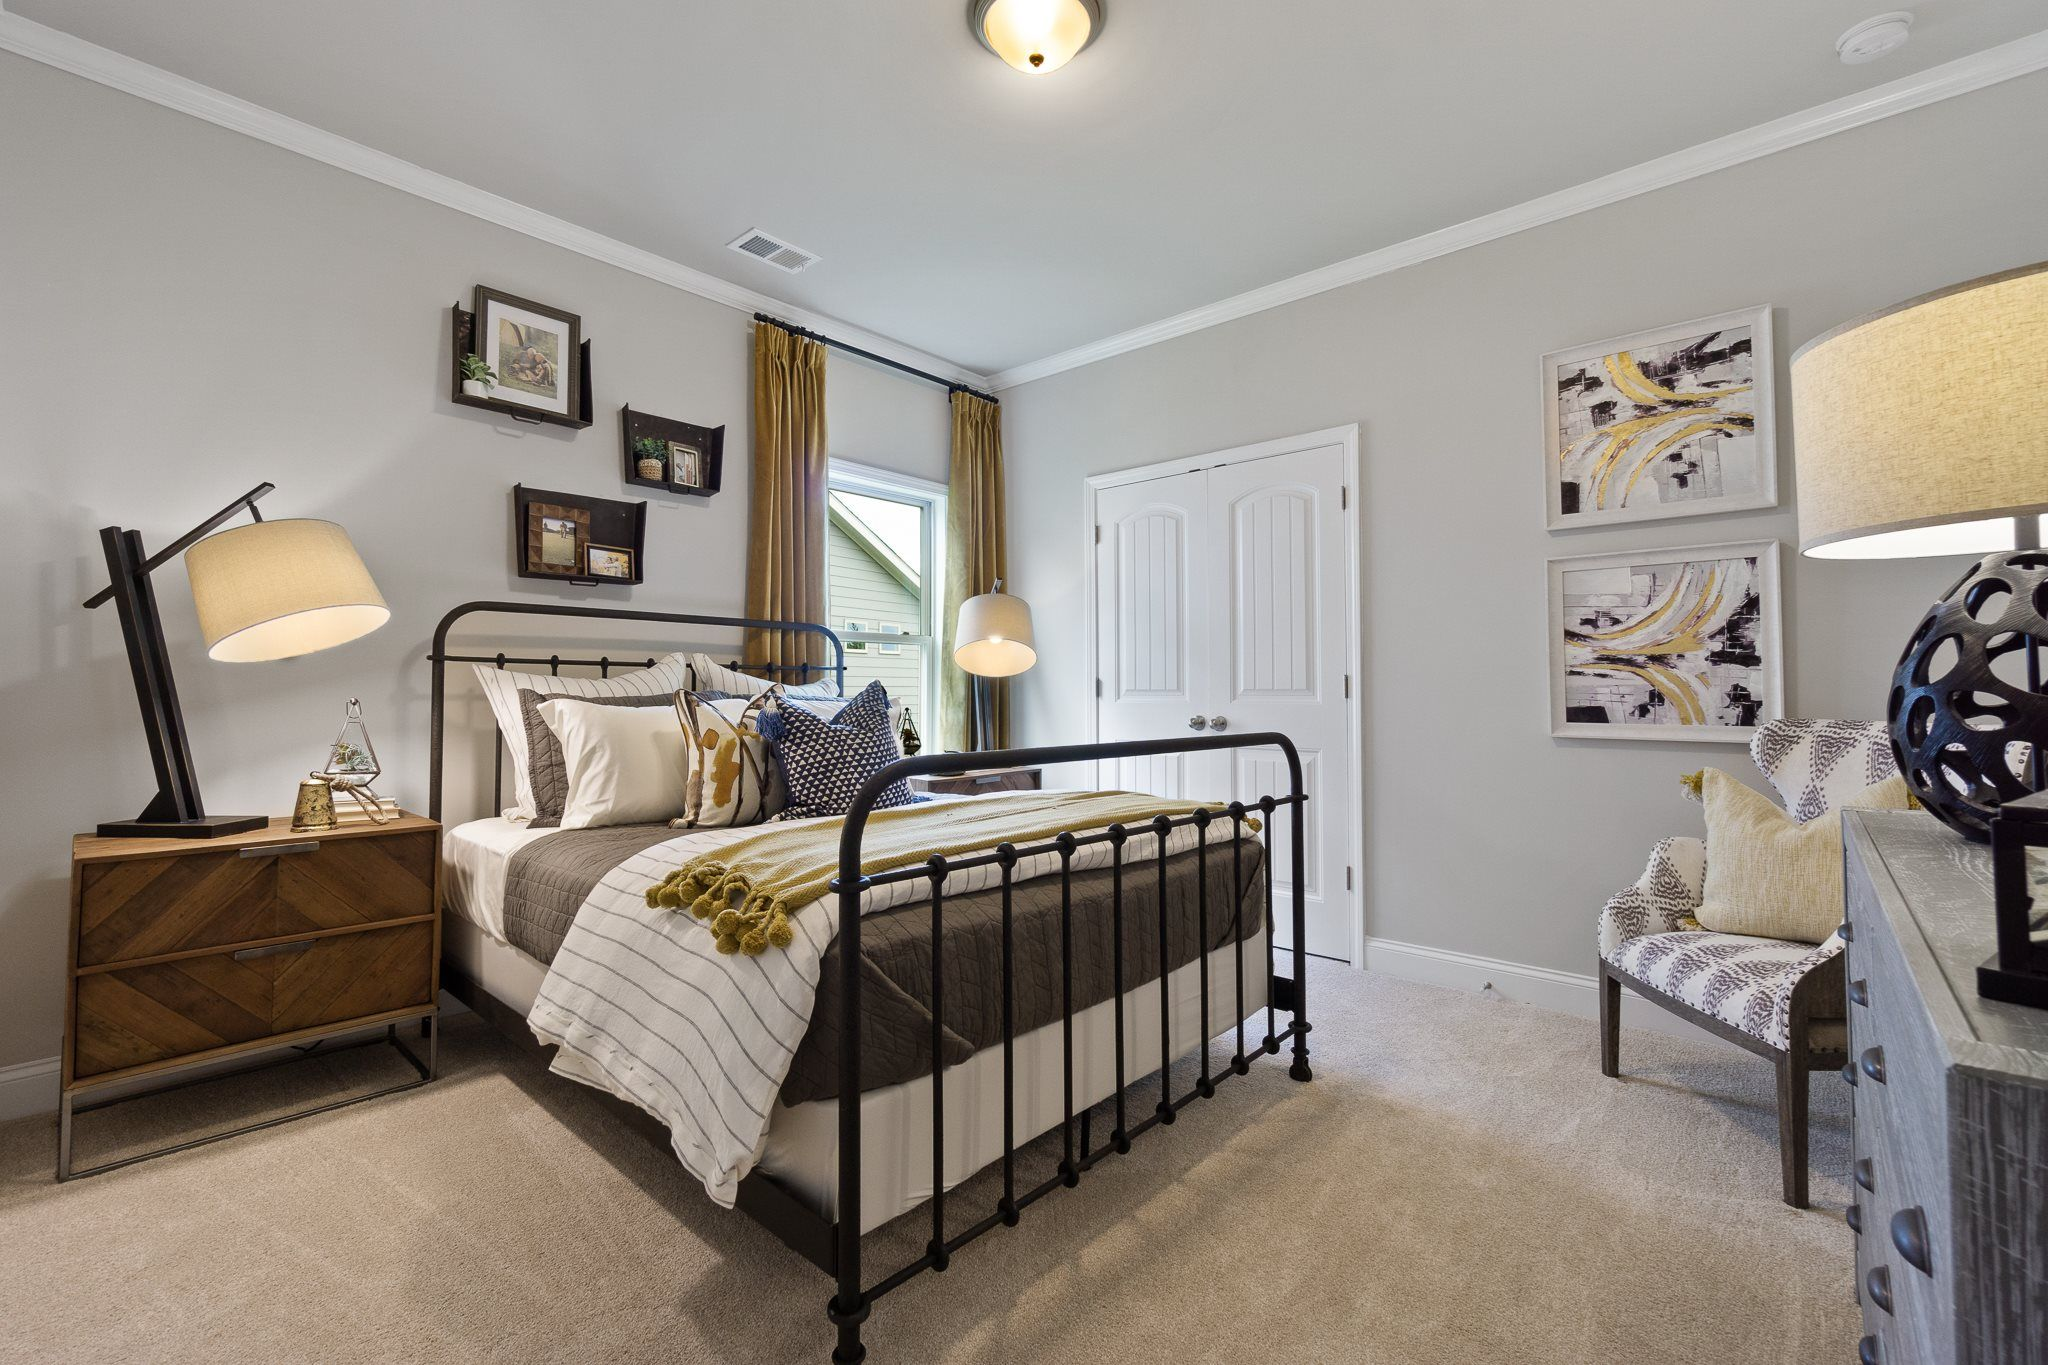 Bedroom featured in the Crestwood By Lennar in Atlanta, GA